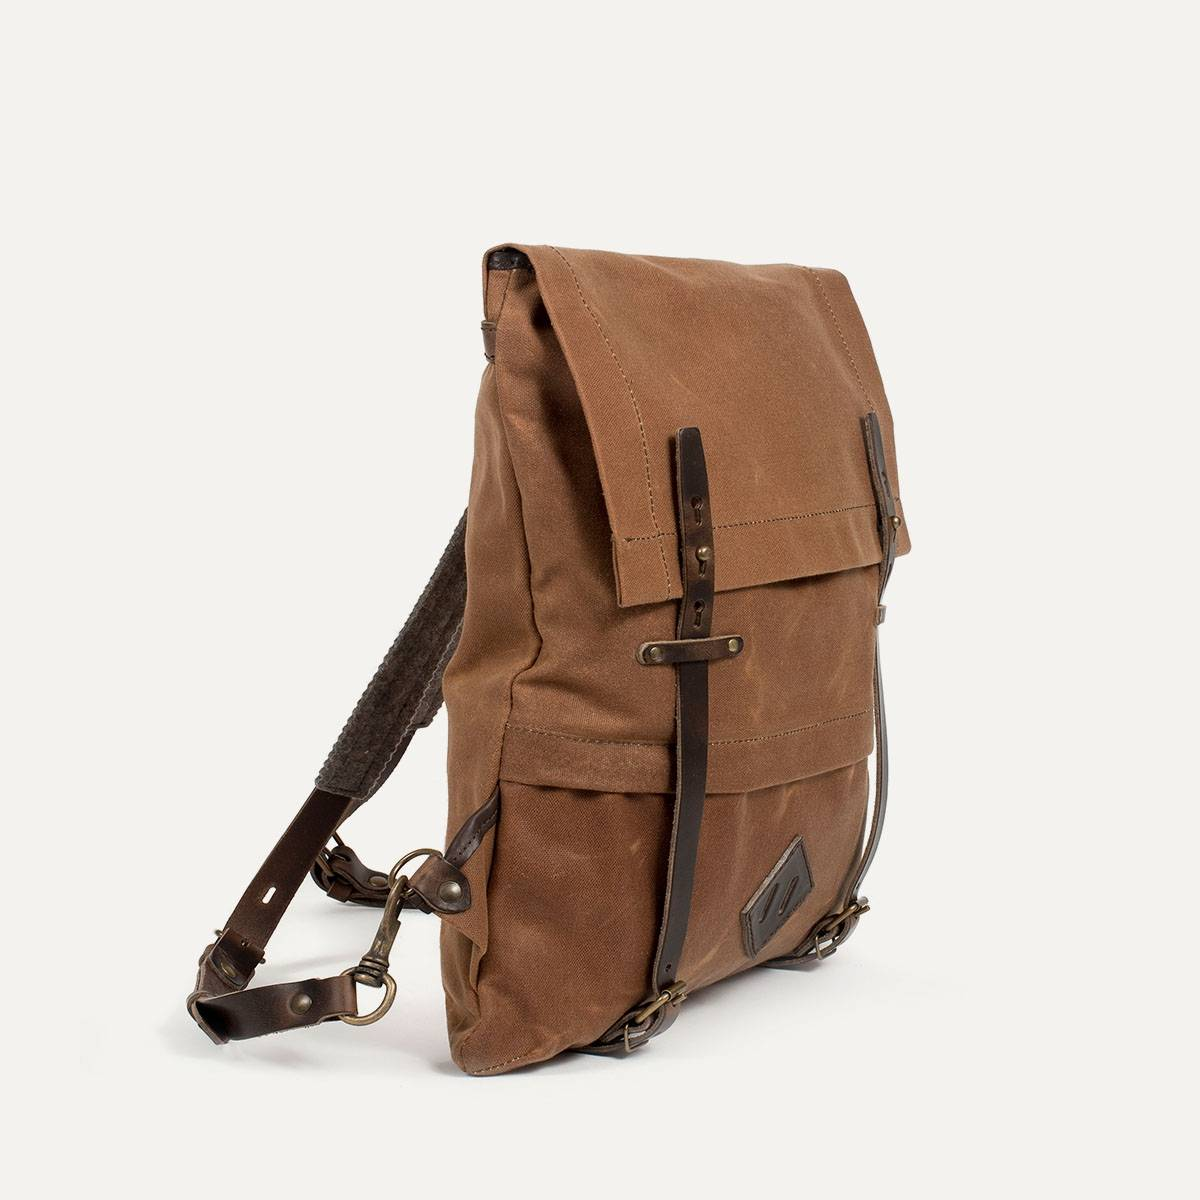 Coursier backpack WAXY - Camel/Brown (image n°3)